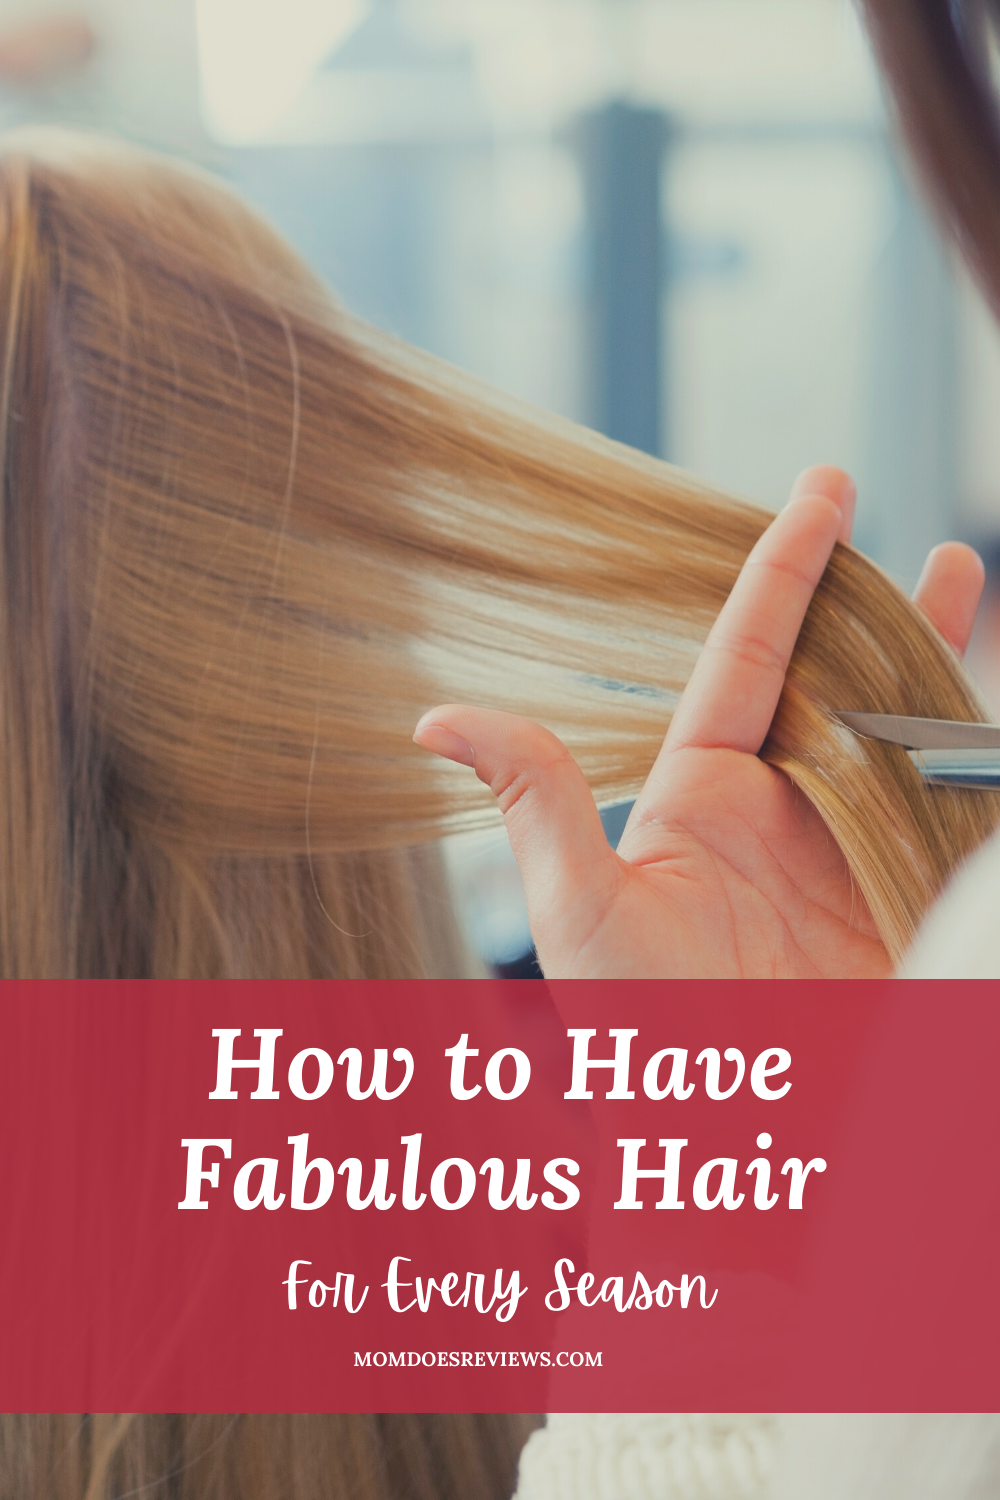 How to Take Care of Your Hair During Dry Season